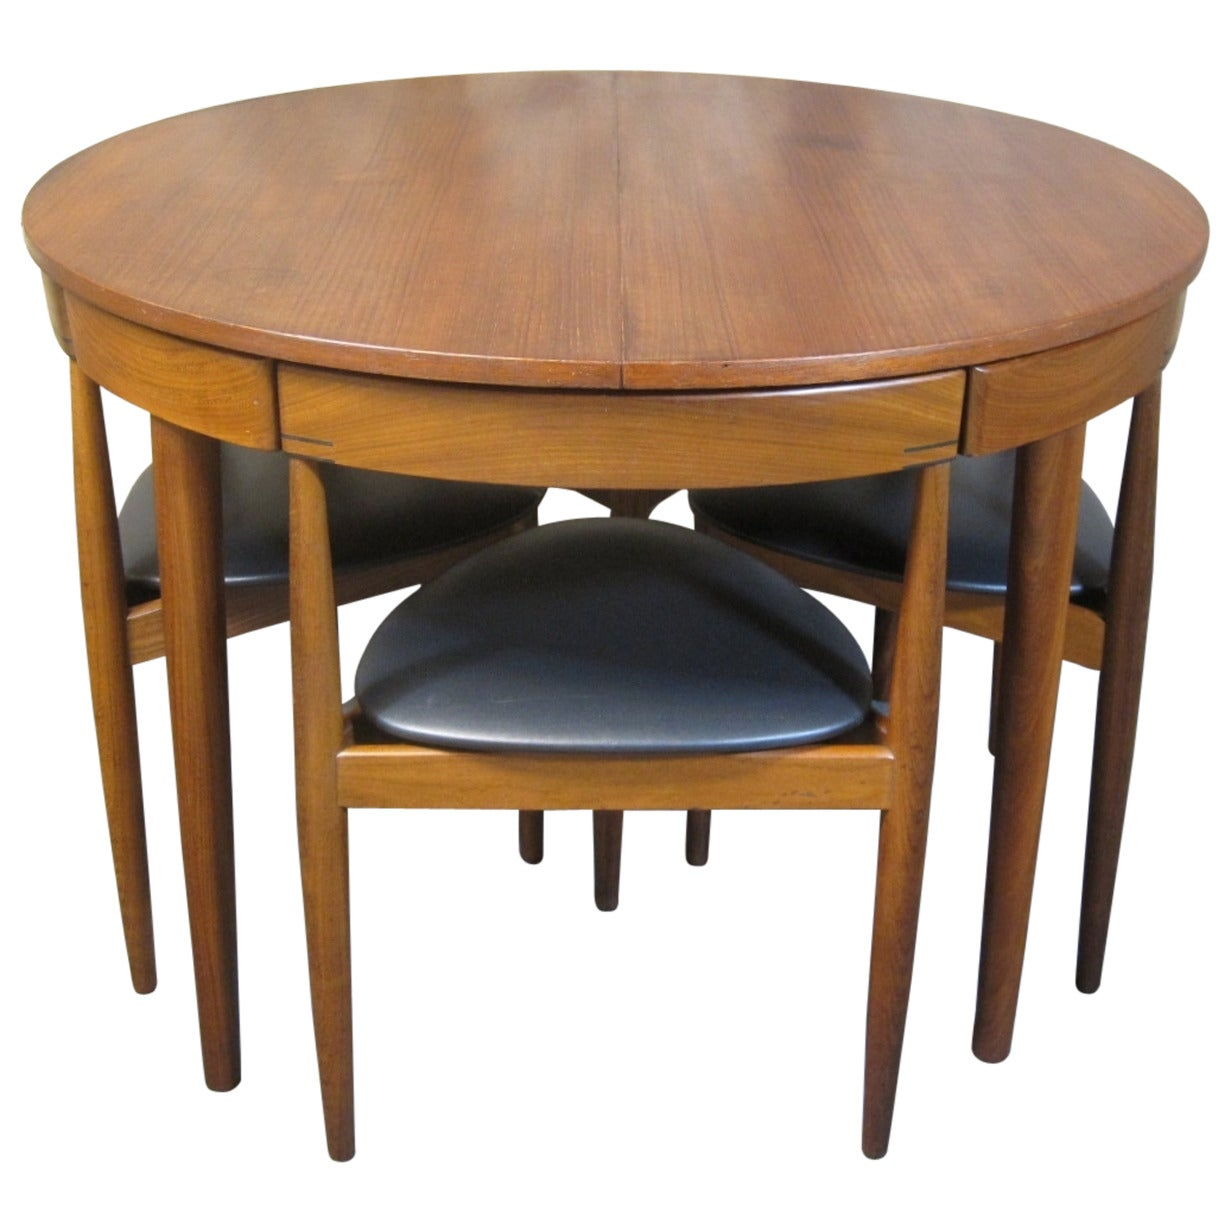 Frem Rojle Teak Dining Table And Chairs Mid Century Modern At 1stdibs